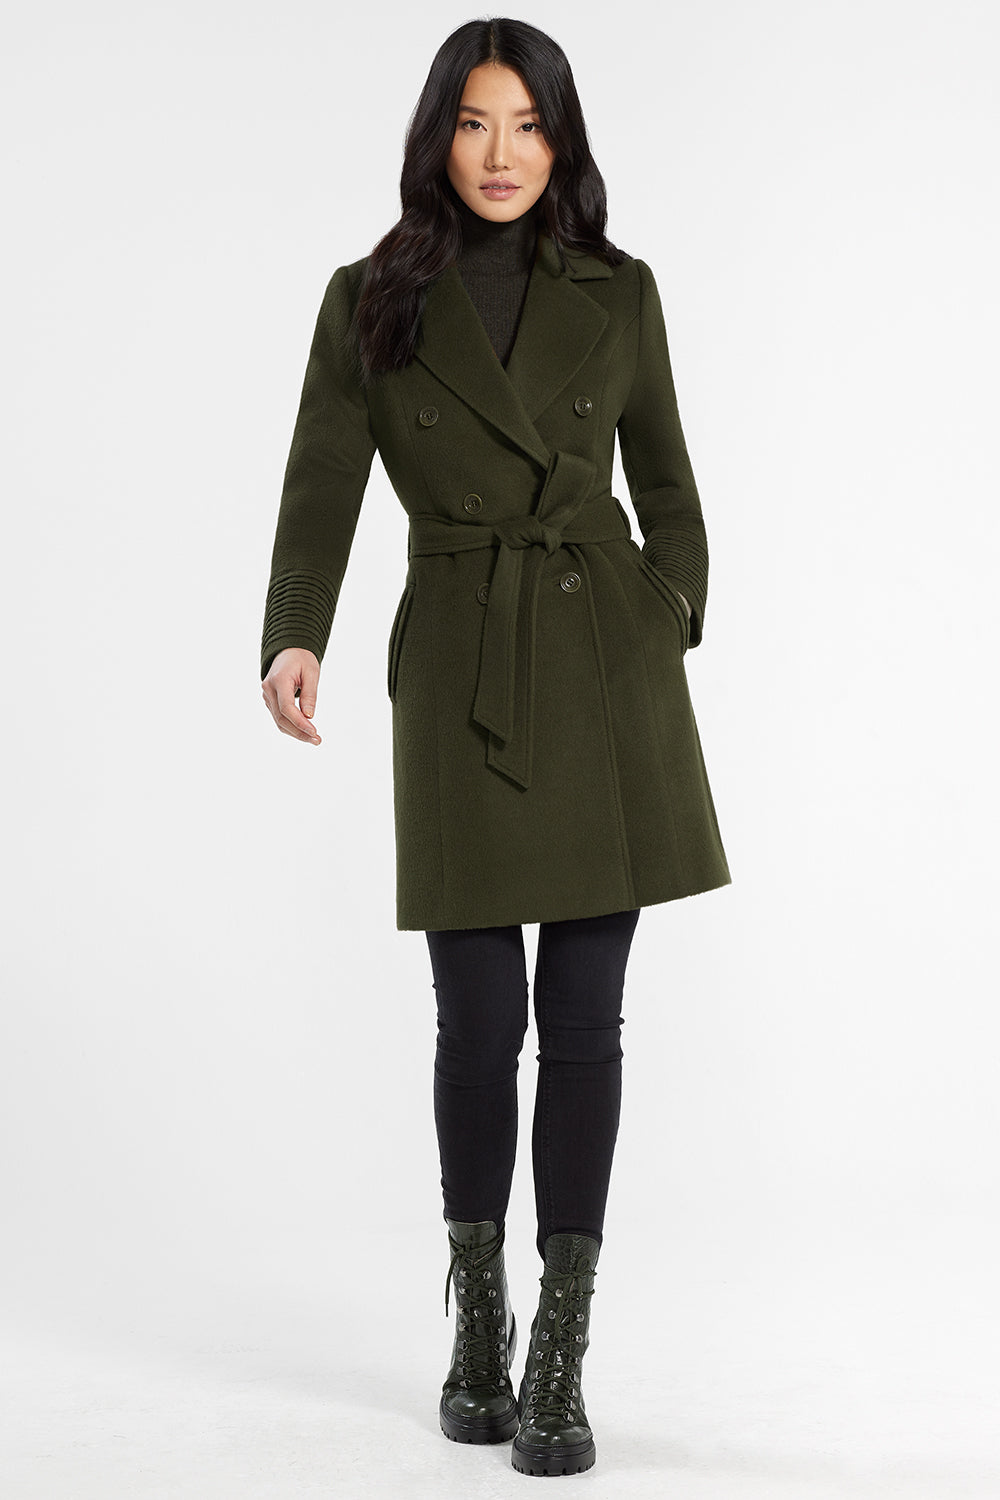 Sentaler Mid Length Double Breasted Coat featured in Baby Alpaca and available in Olive. Seen from front with belt.